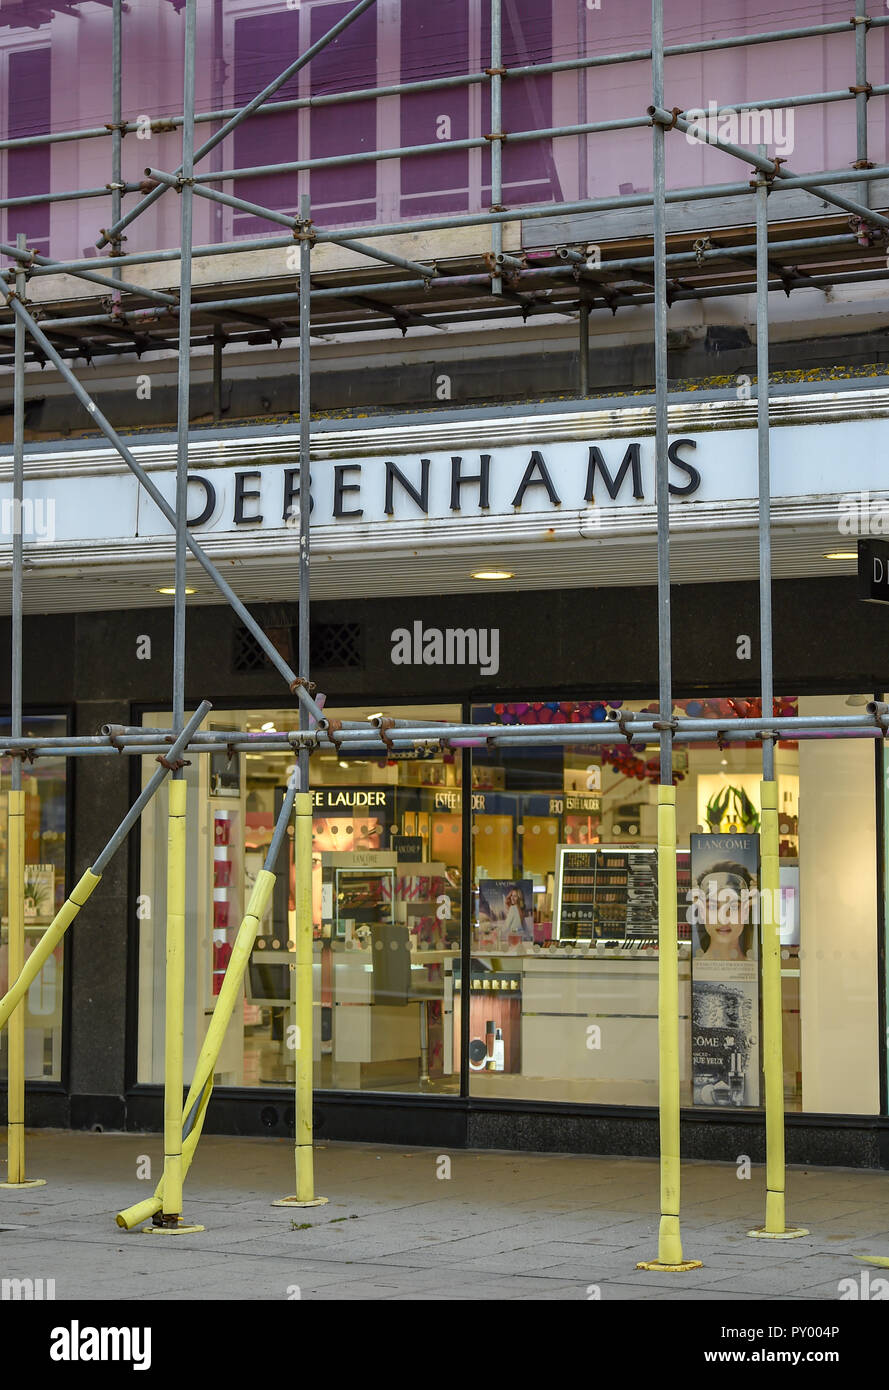 b4d82abb31e Worthing UK 25th October 2018 - The Debenhams department store in Worthing  this morning . The